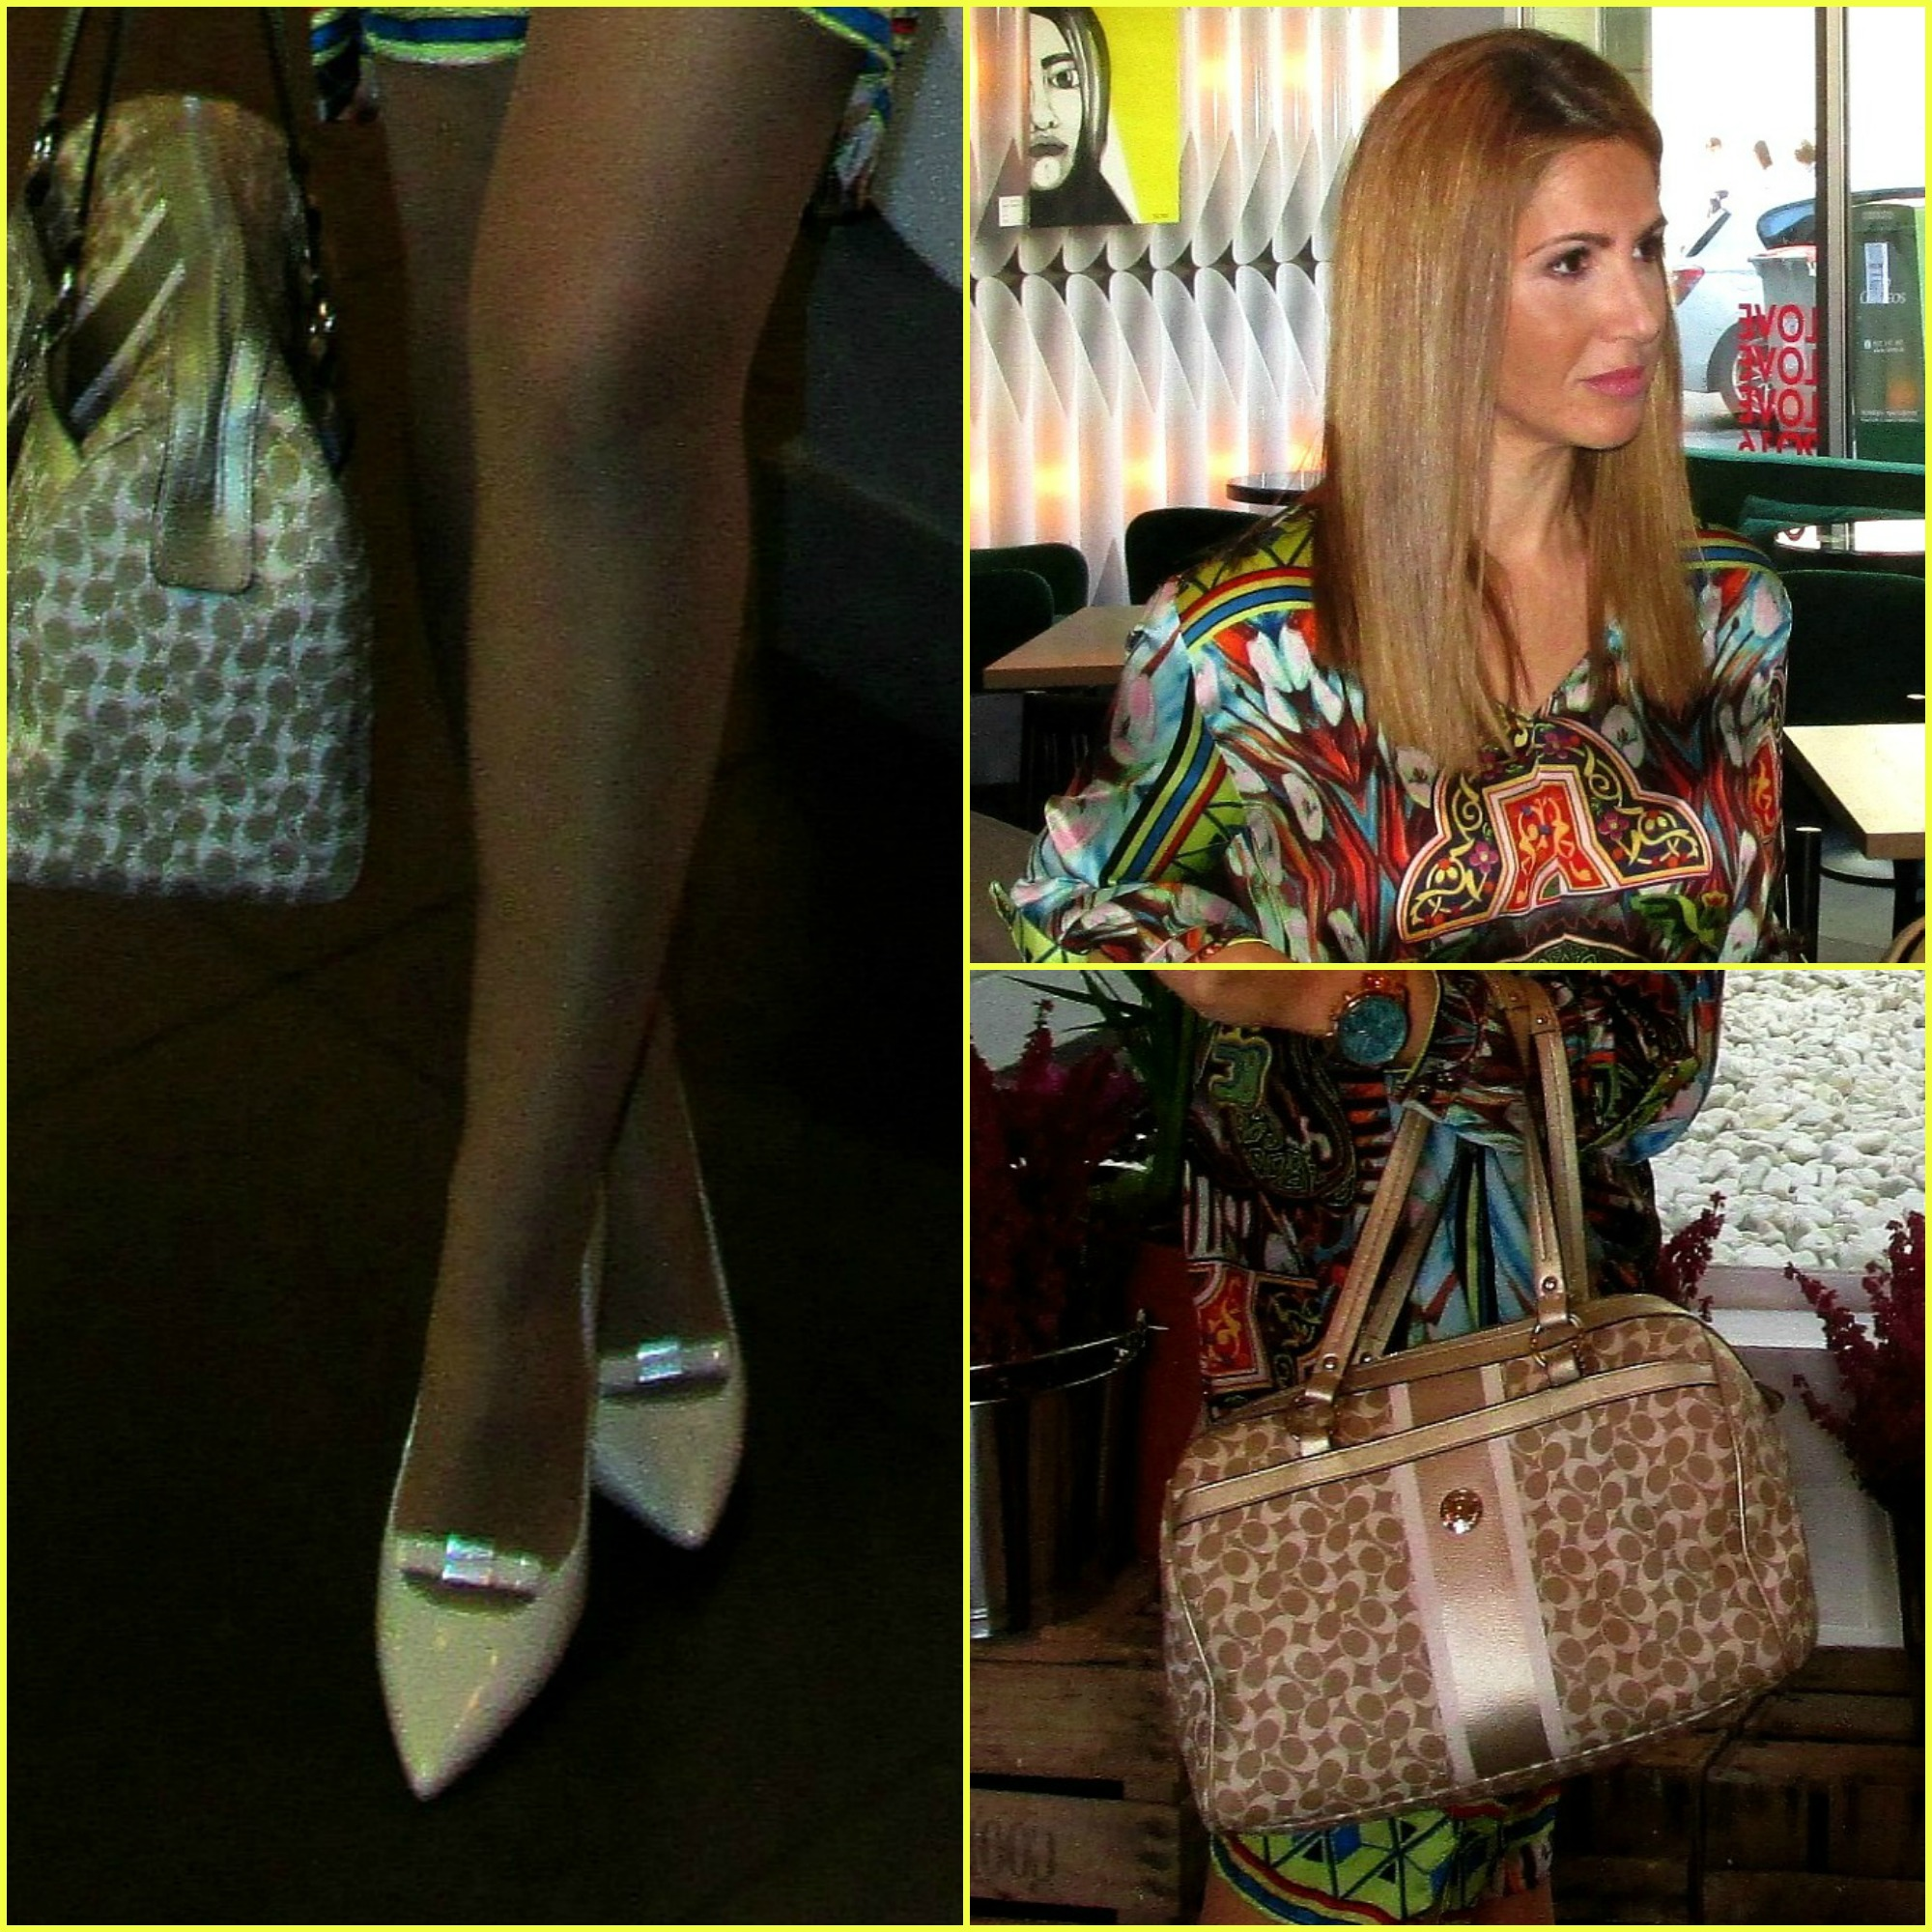 Dress: COORLEONE CO;Sunglasses: VOGUE; Bag: COACH; Ring: SWAROVSKY;Swatch: GUESS;Shoes: NINE WEST;